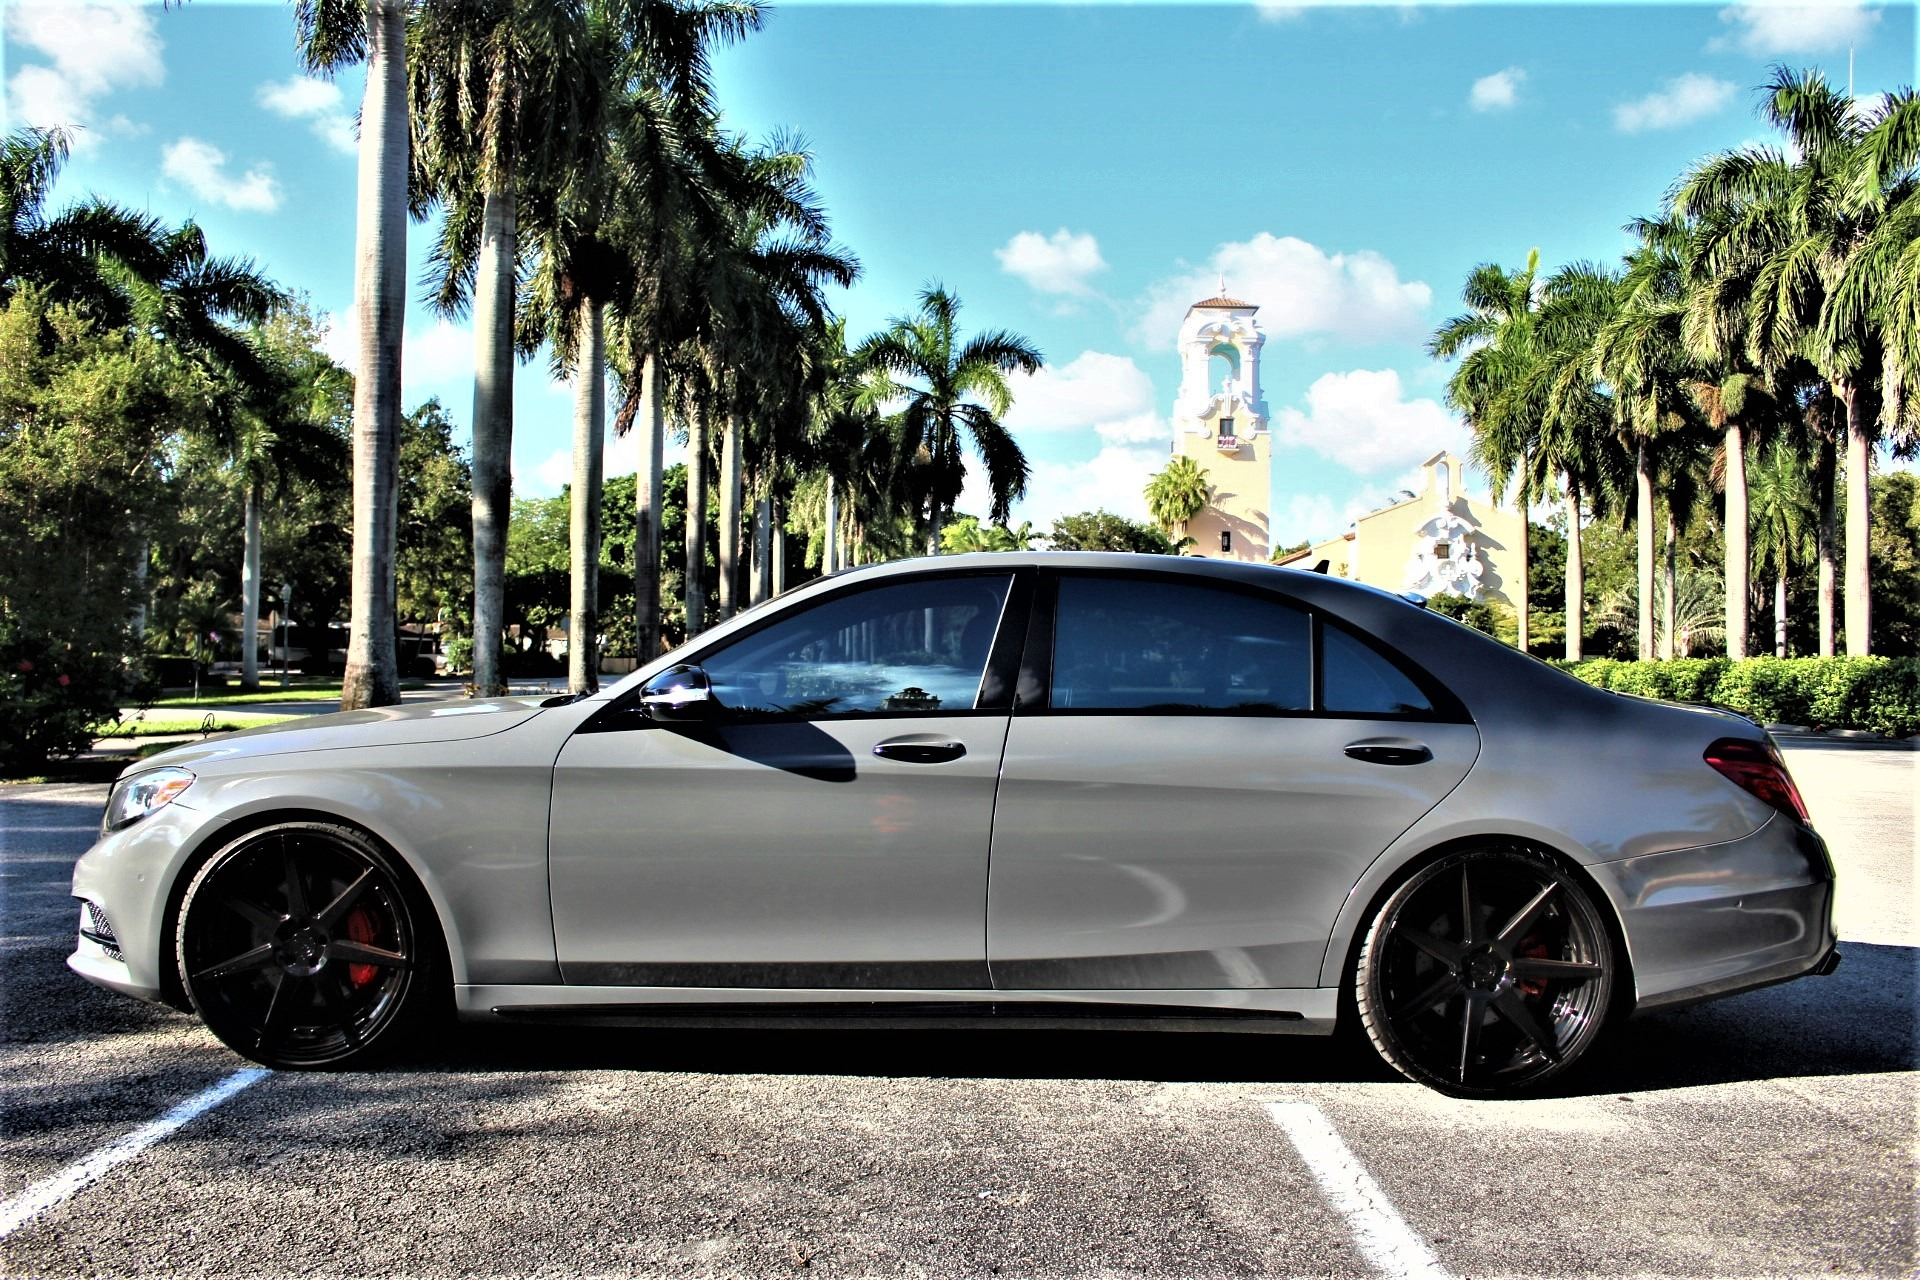 Used 2014 Mercedes-Benz S-Class S 550 for sale Sold at The Gables Sports Cars in Miami FL 33146 2